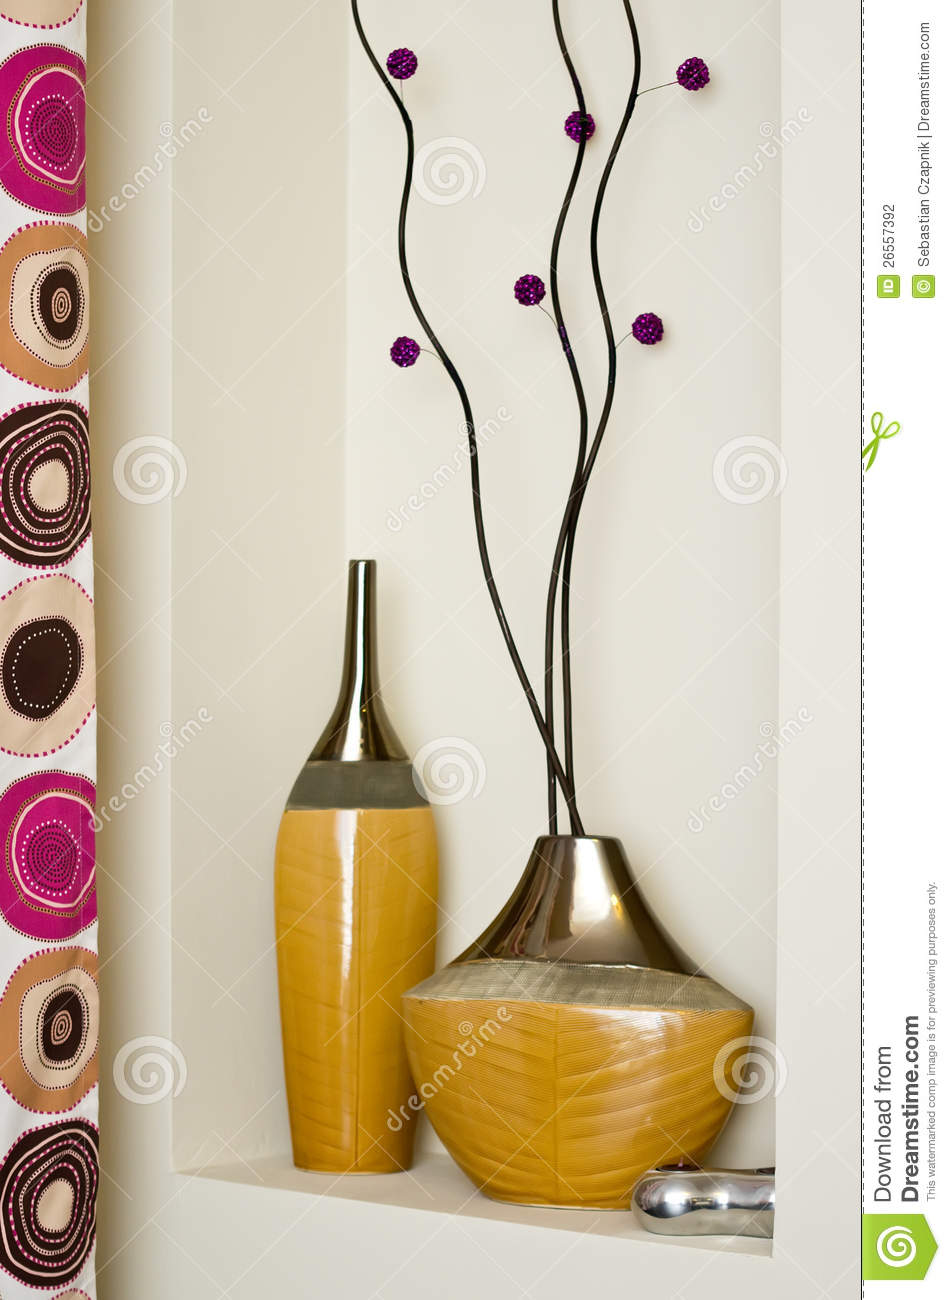 Vases decoration stock photography image 26557392 - Vase de decoration interieur ...